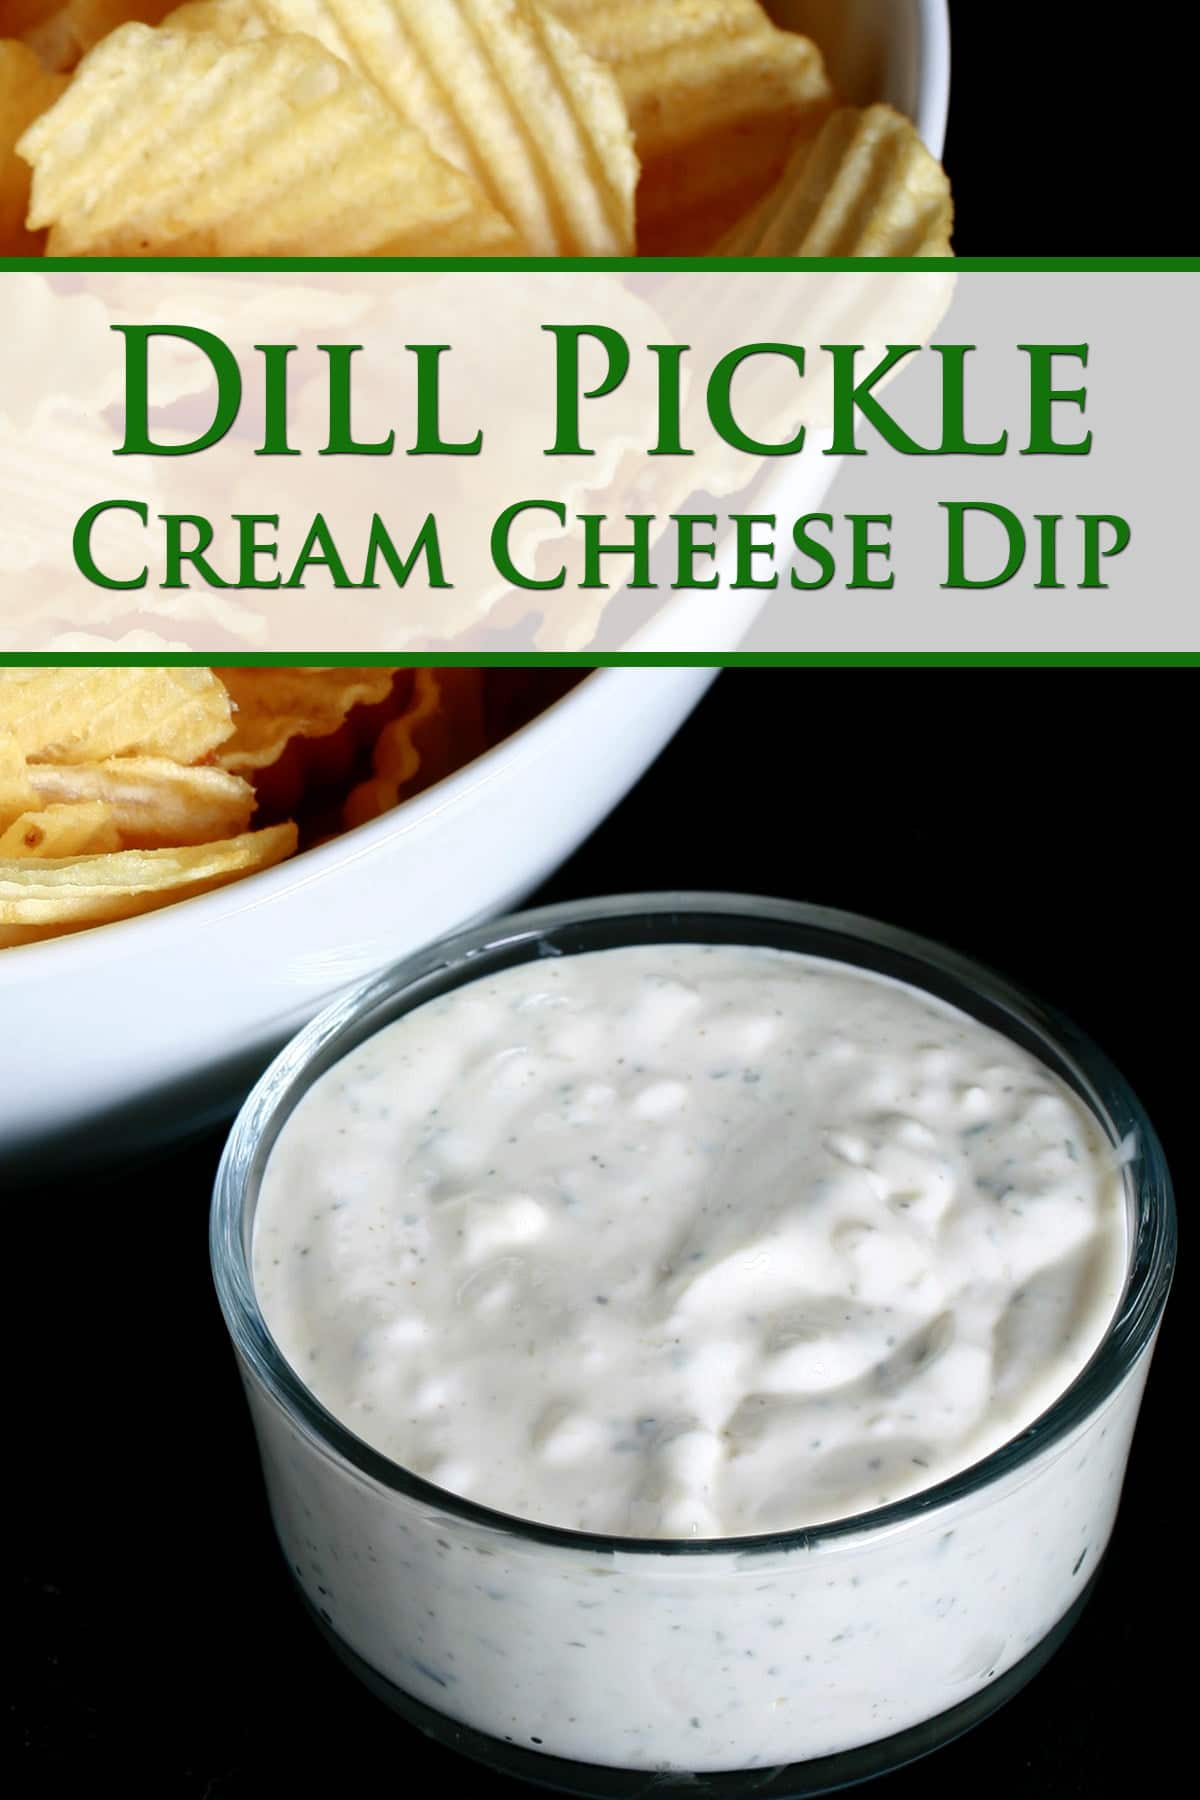 A close up view of a bowl of dill pickle cream cheese dip, next to a white bowl full of ripple chips.